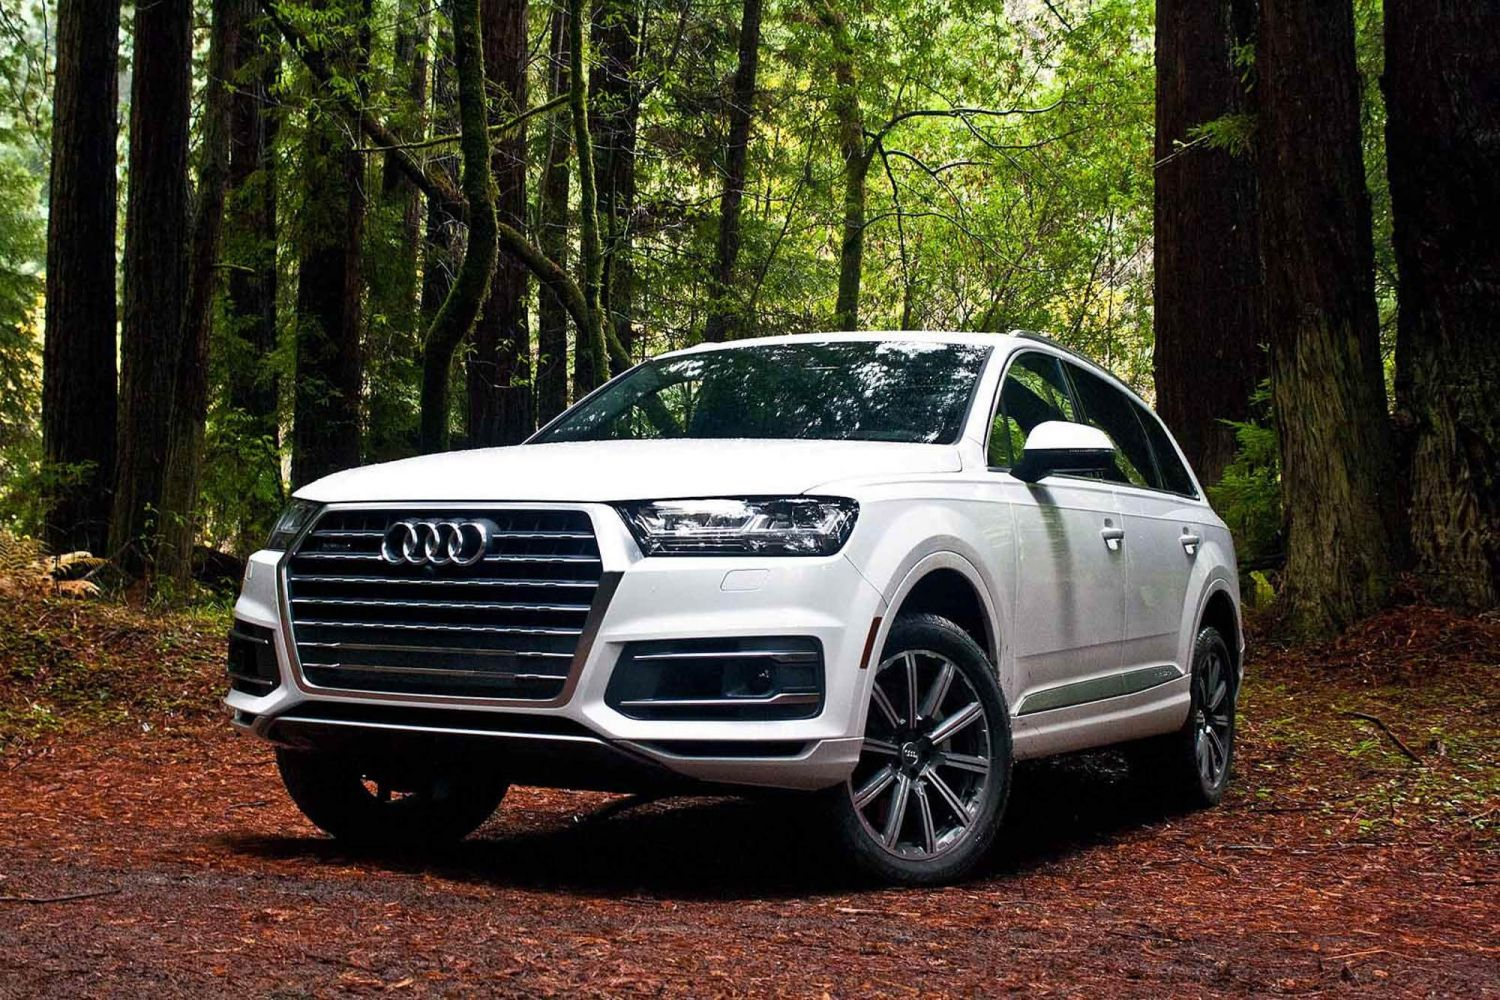 best small suv for men best small size suv Check more at